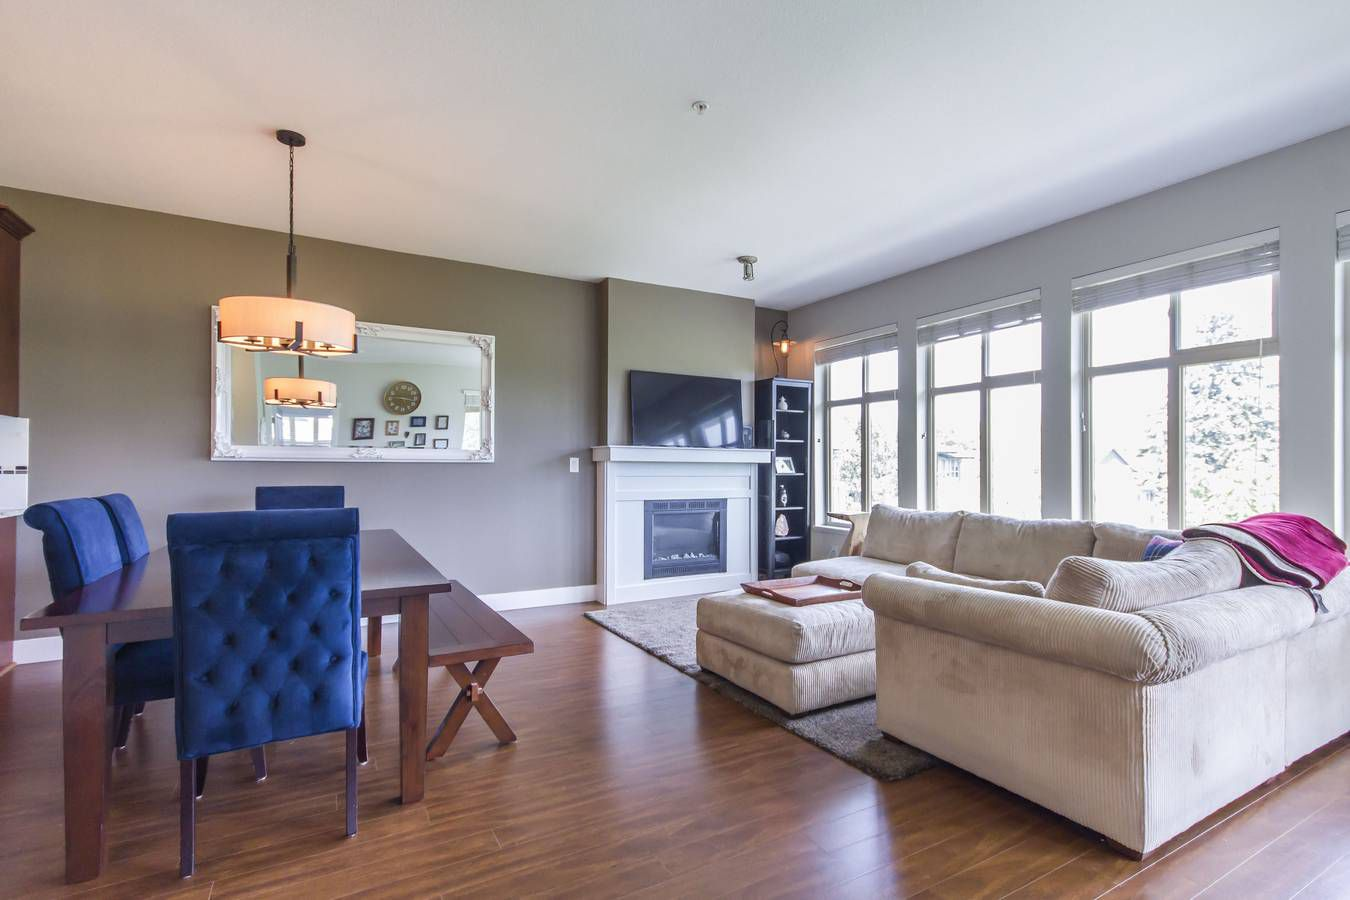 Main Photo: 404-2330 Shaughnessy in Port Coquitlam: Central Pt Coquitlam Condo for sale : MLS®# R2272817